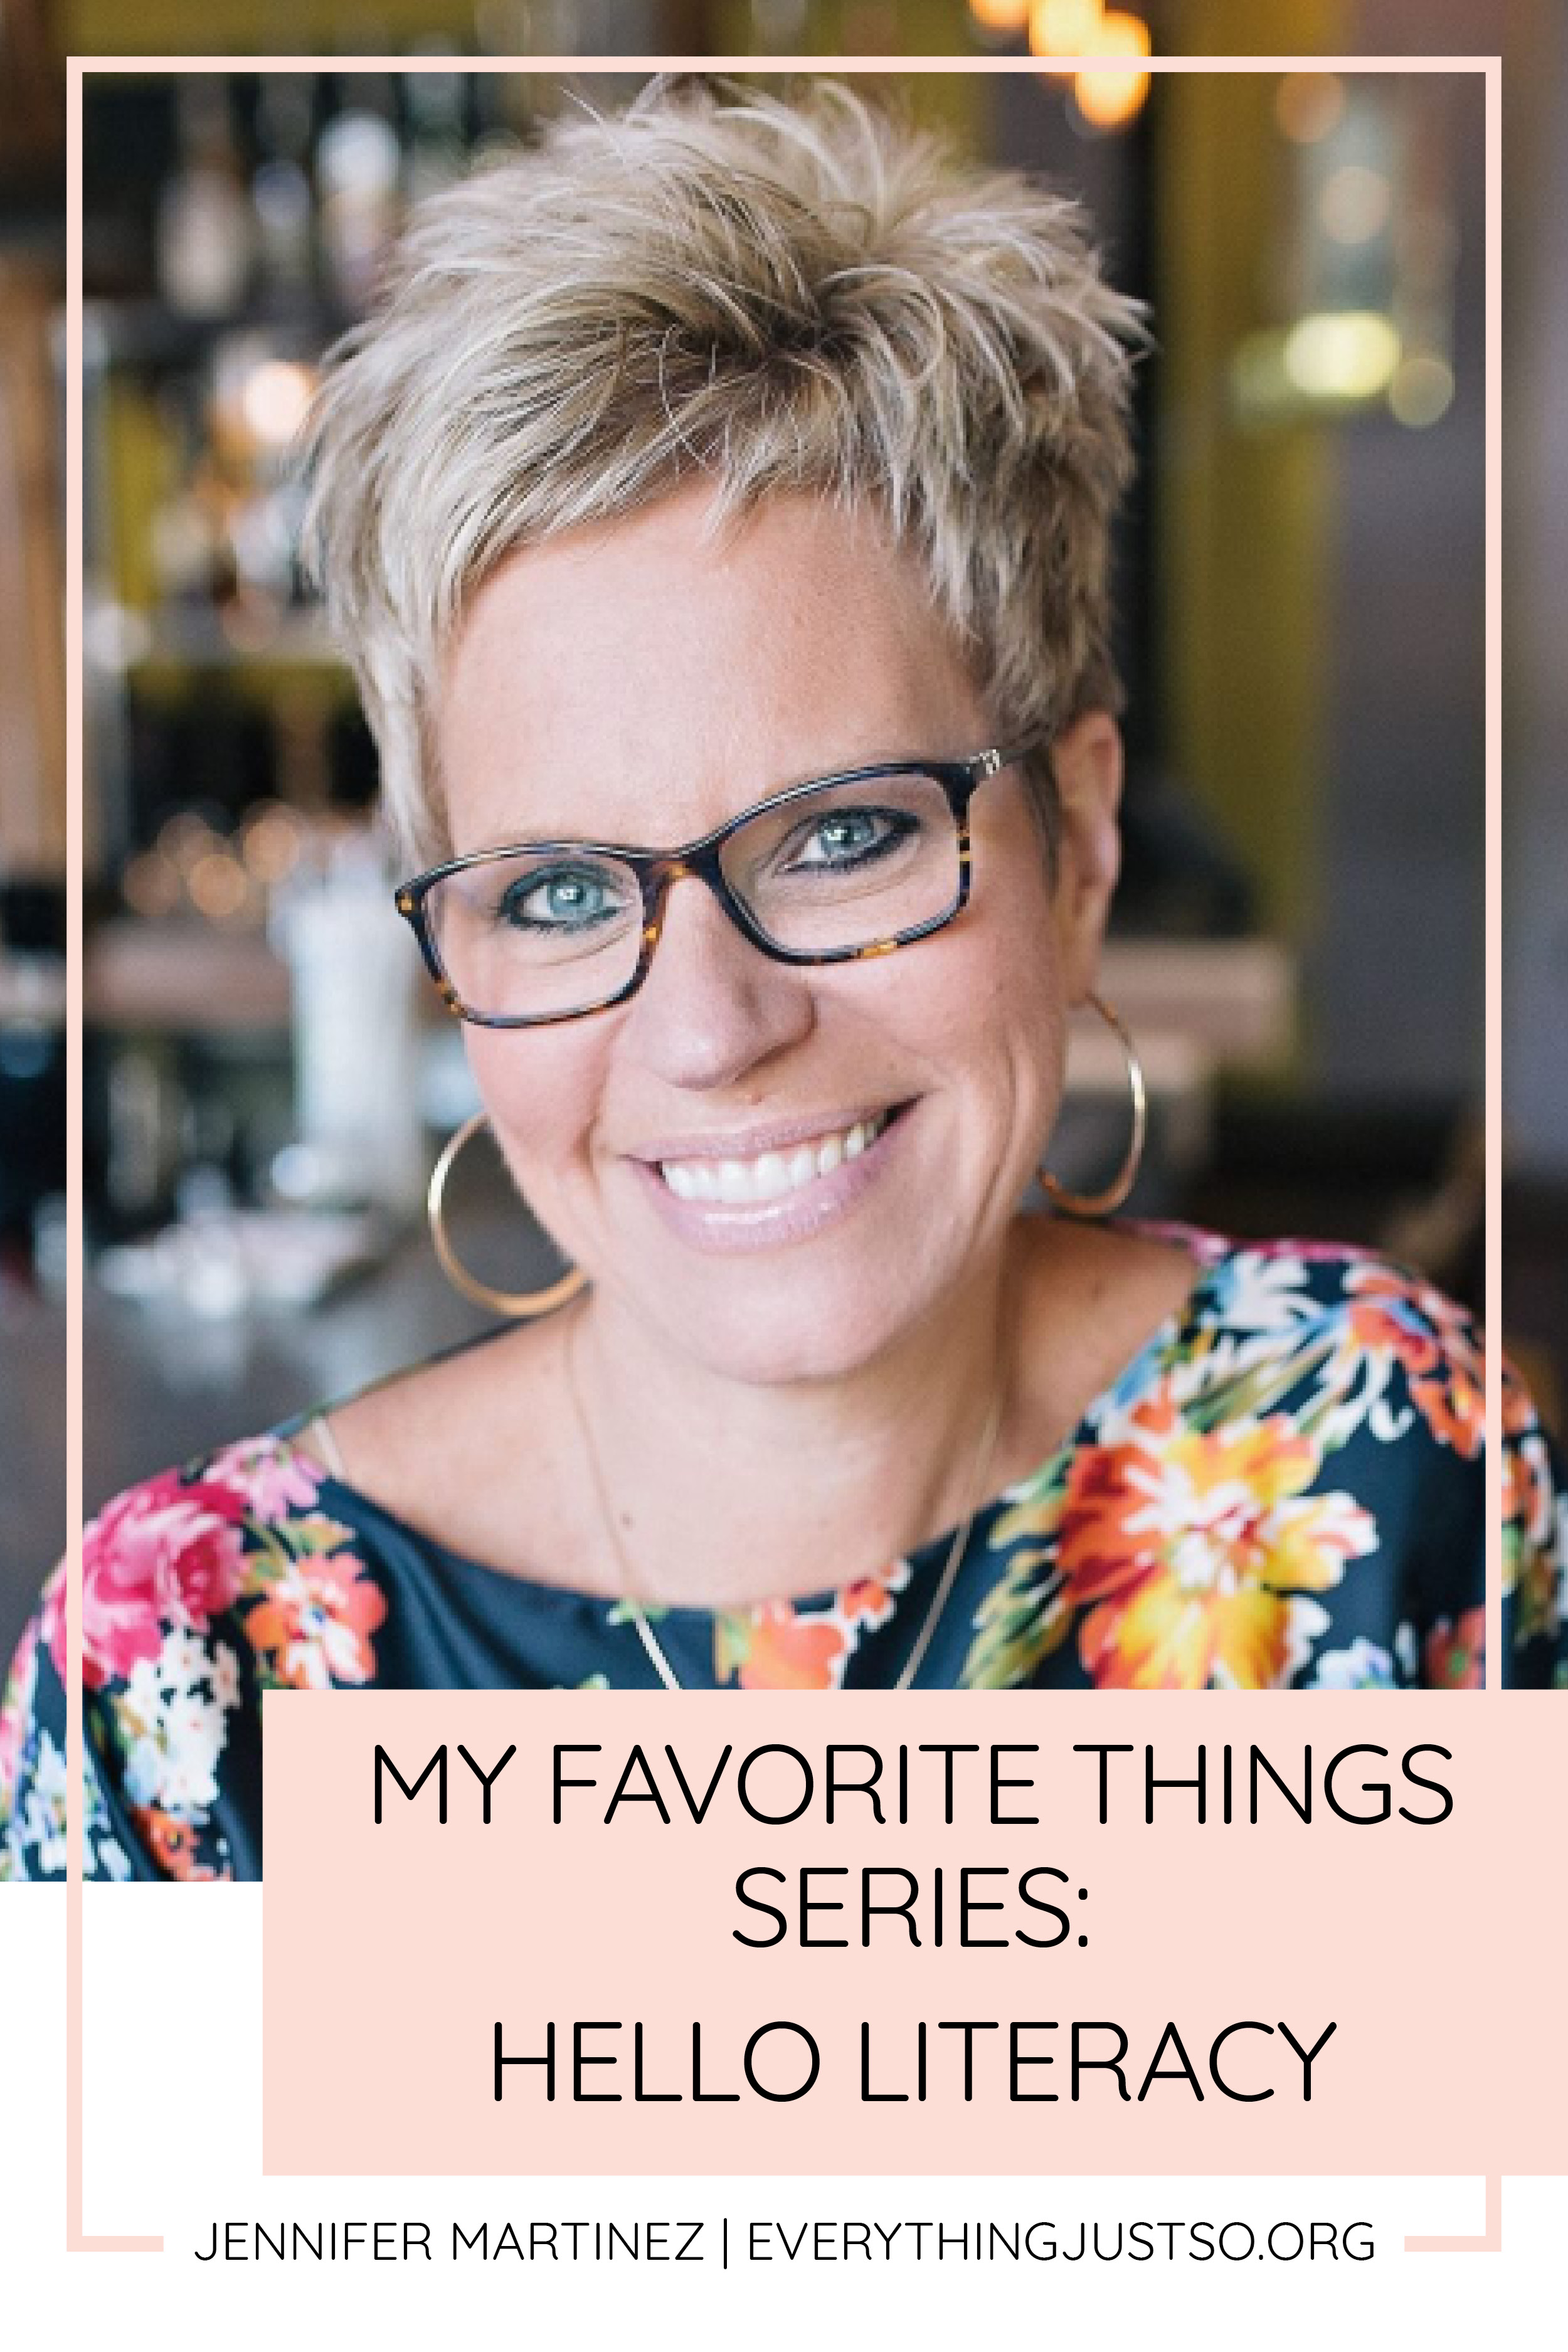 My Go To Source for the Best RtI Resources | Meet my go-to person for quality, research based RtI resources: Jen Jones of Hello Literacy. Part of my Teacher Appreciation Week Series on My Favorite Things. Win some of my favorite teacher things including teaching resources for your classroom. | everythingjustso.org #helloliteracy #rti #rtiresources #teachingresources #upperelementary